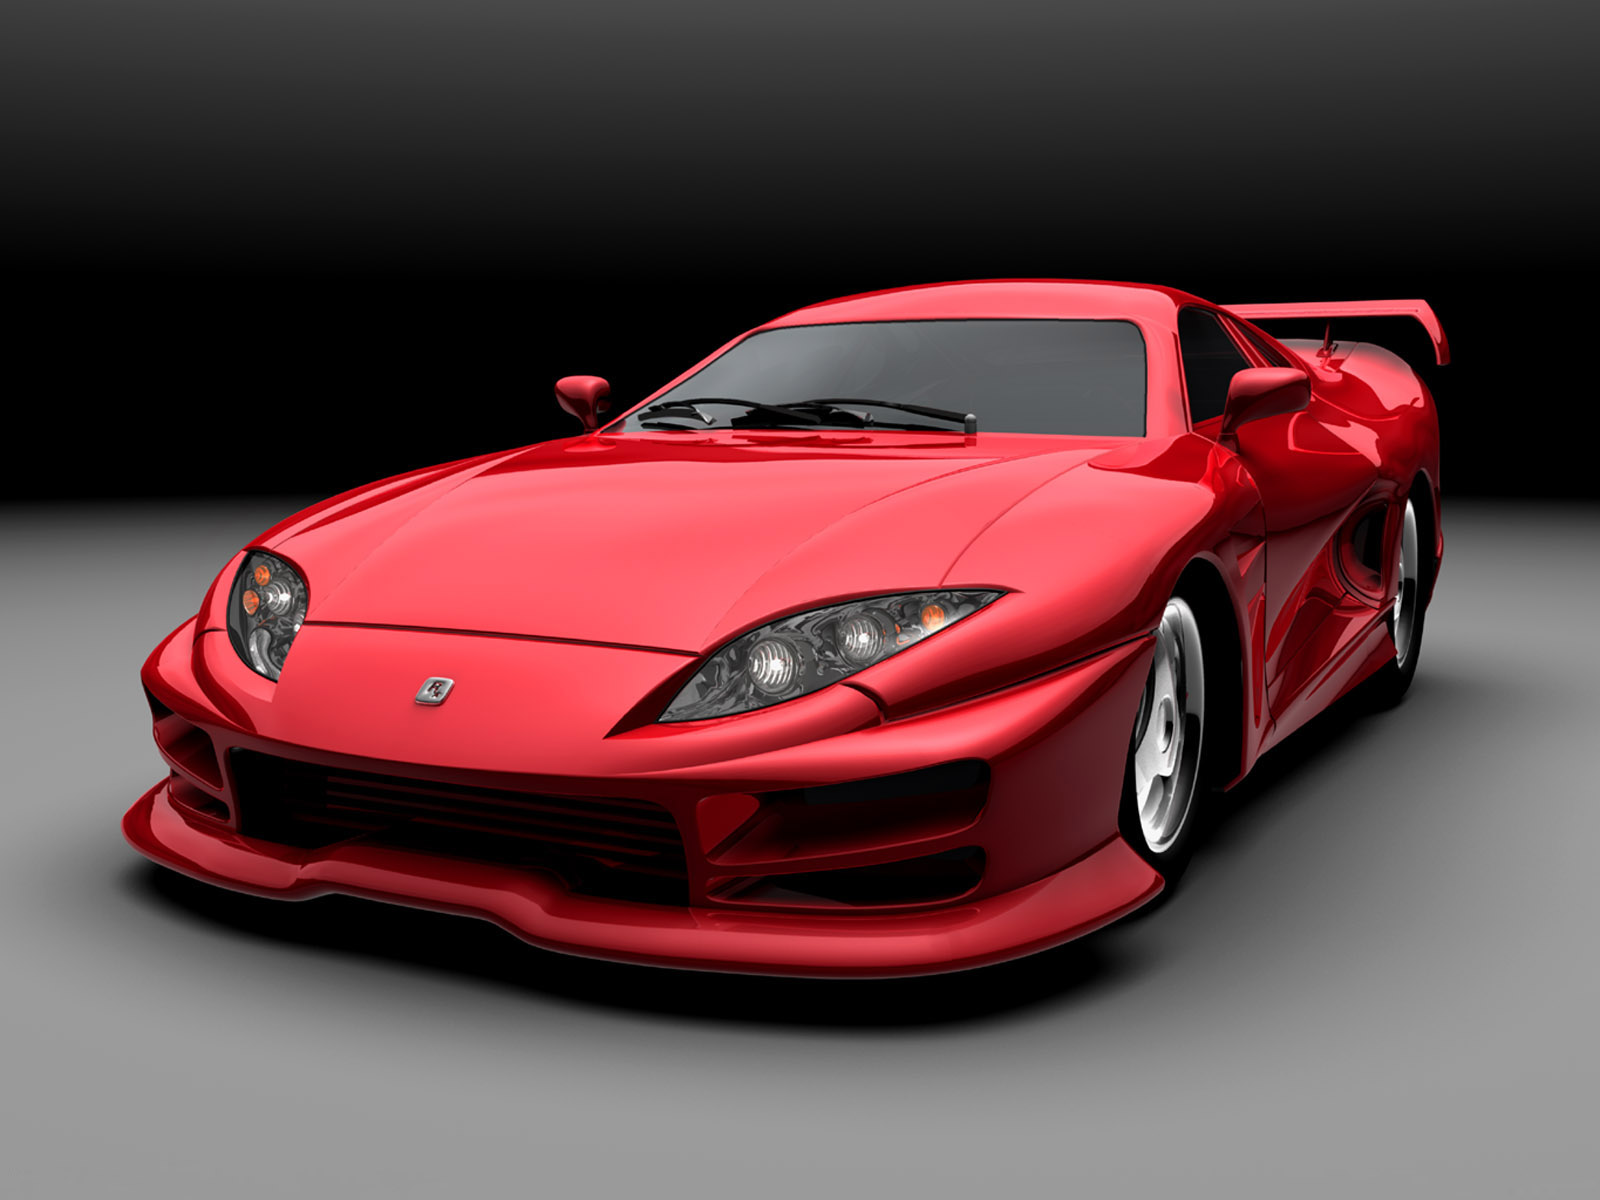 Next Red Sports Car Angle